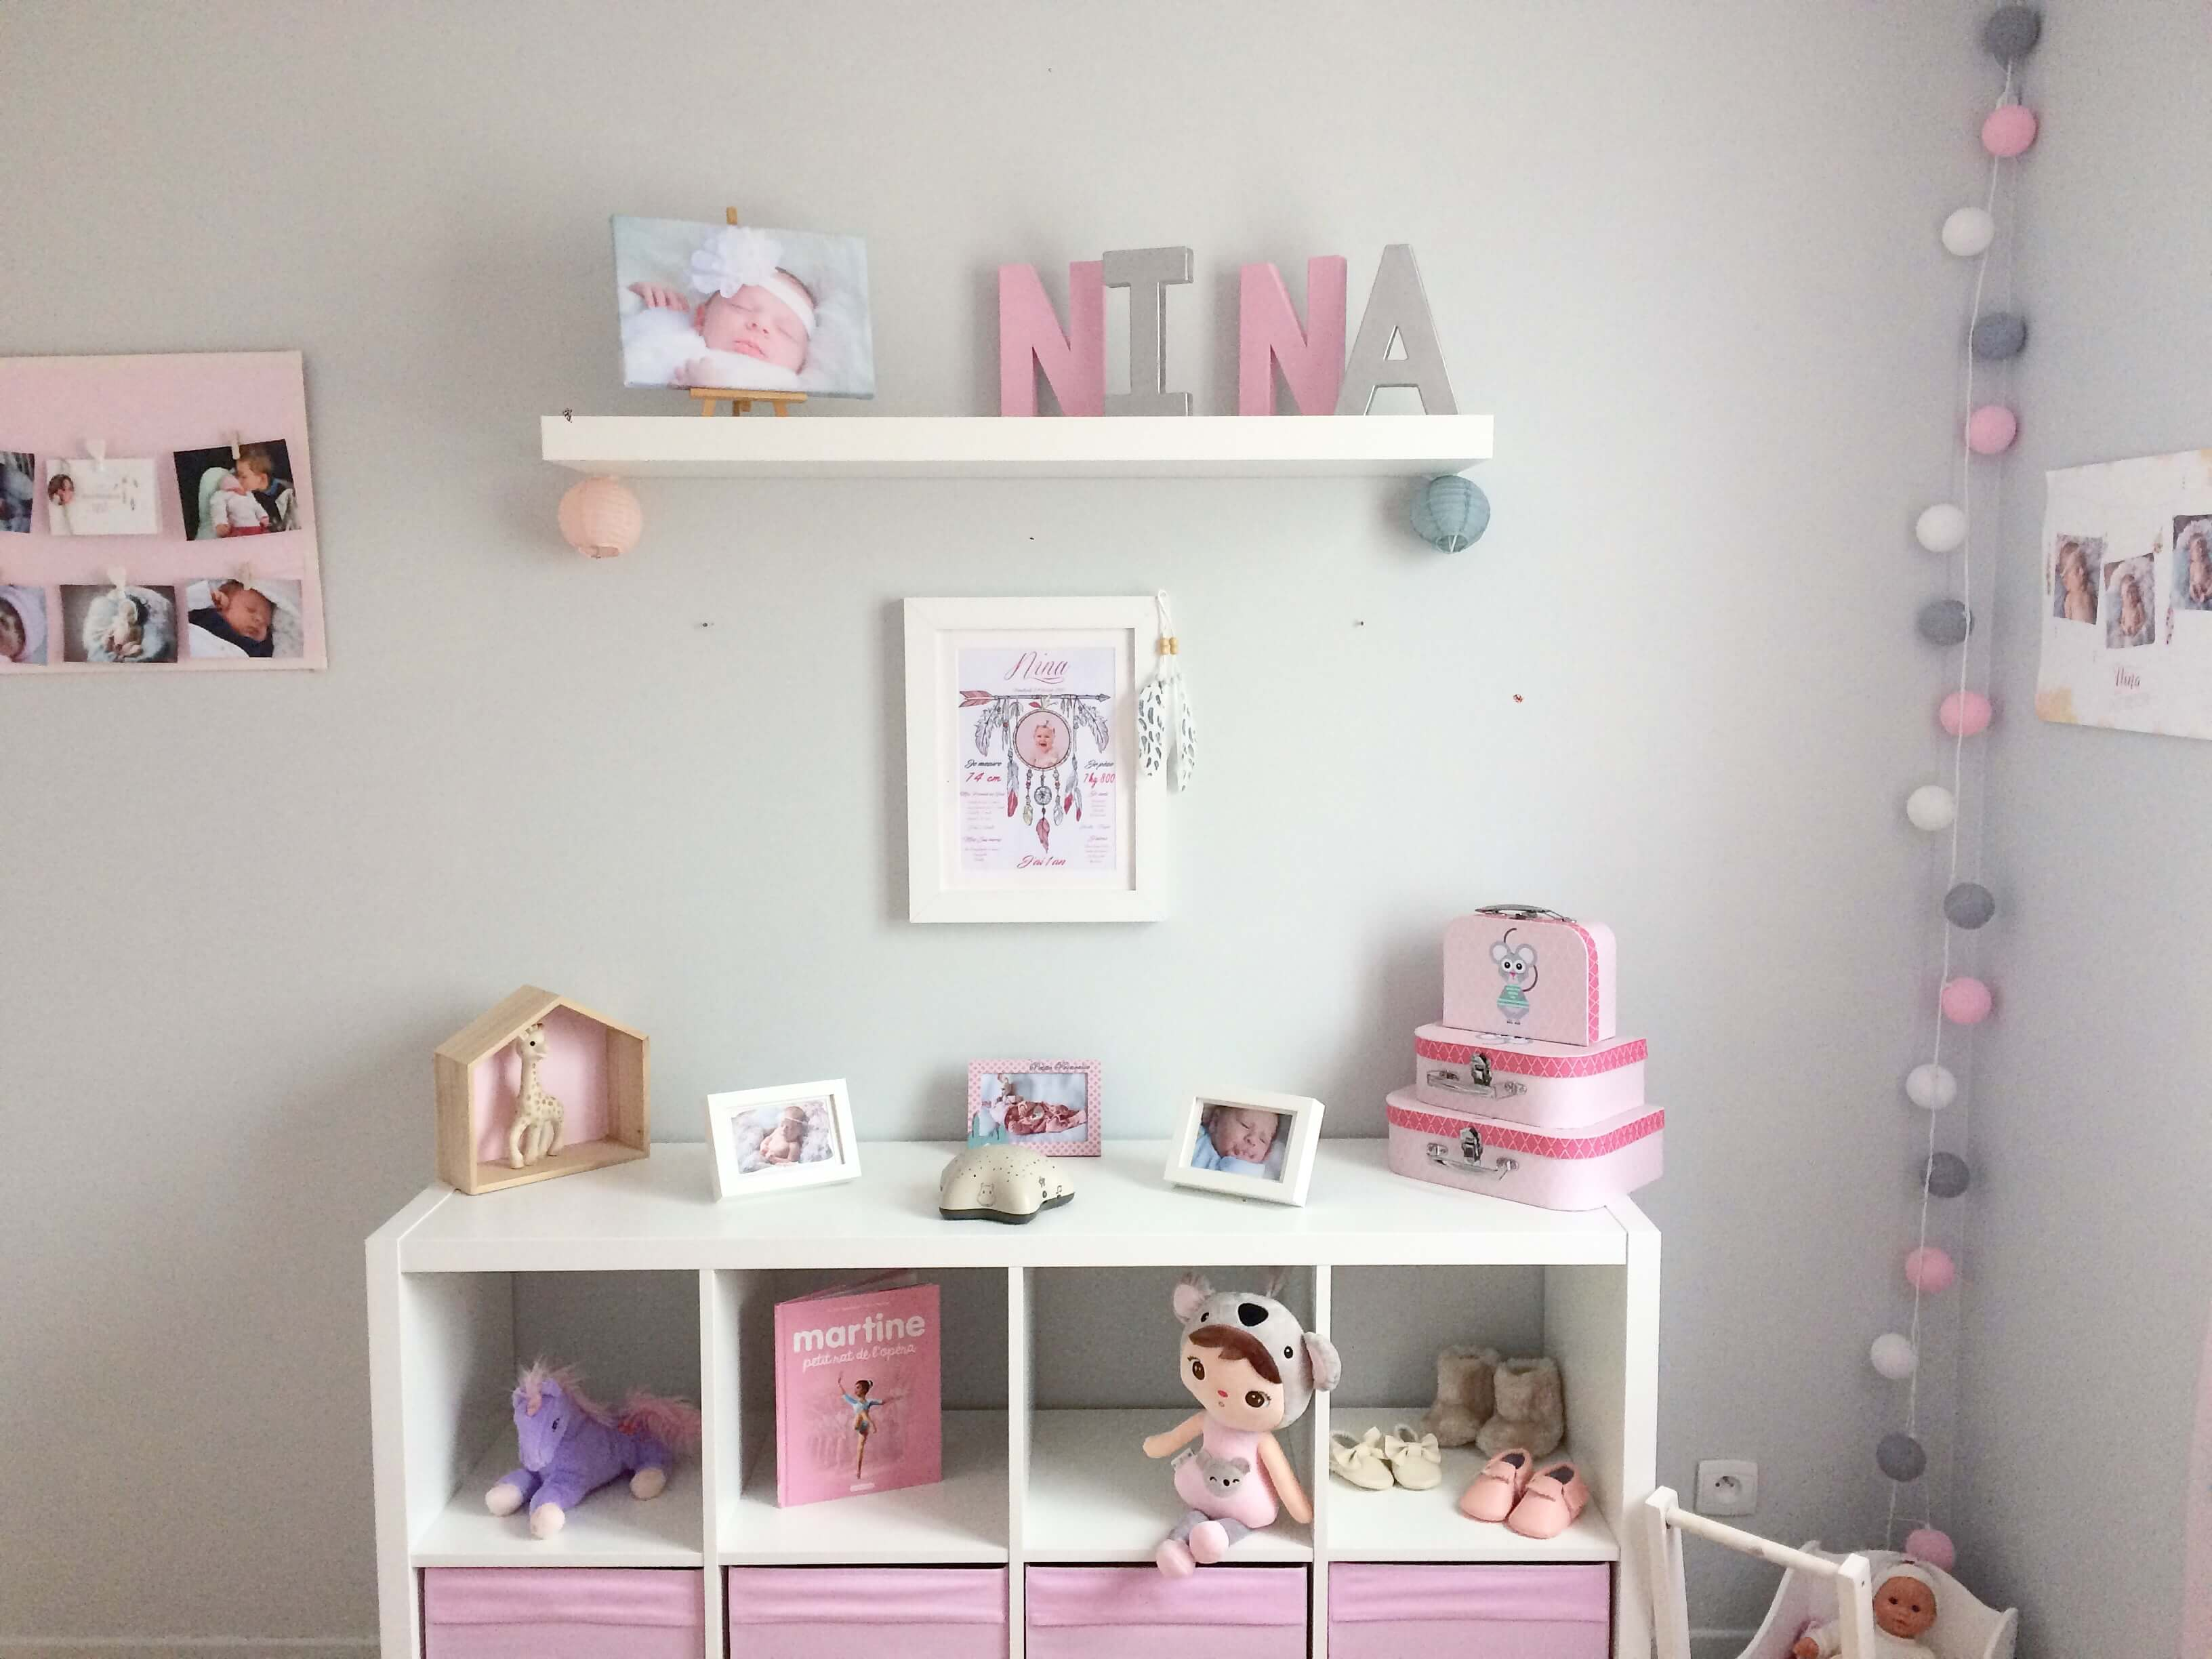 Roze Muurdecoratie Kinderkamer.Babykamer Decoratie Tips Diy Foto S Myposter Blog